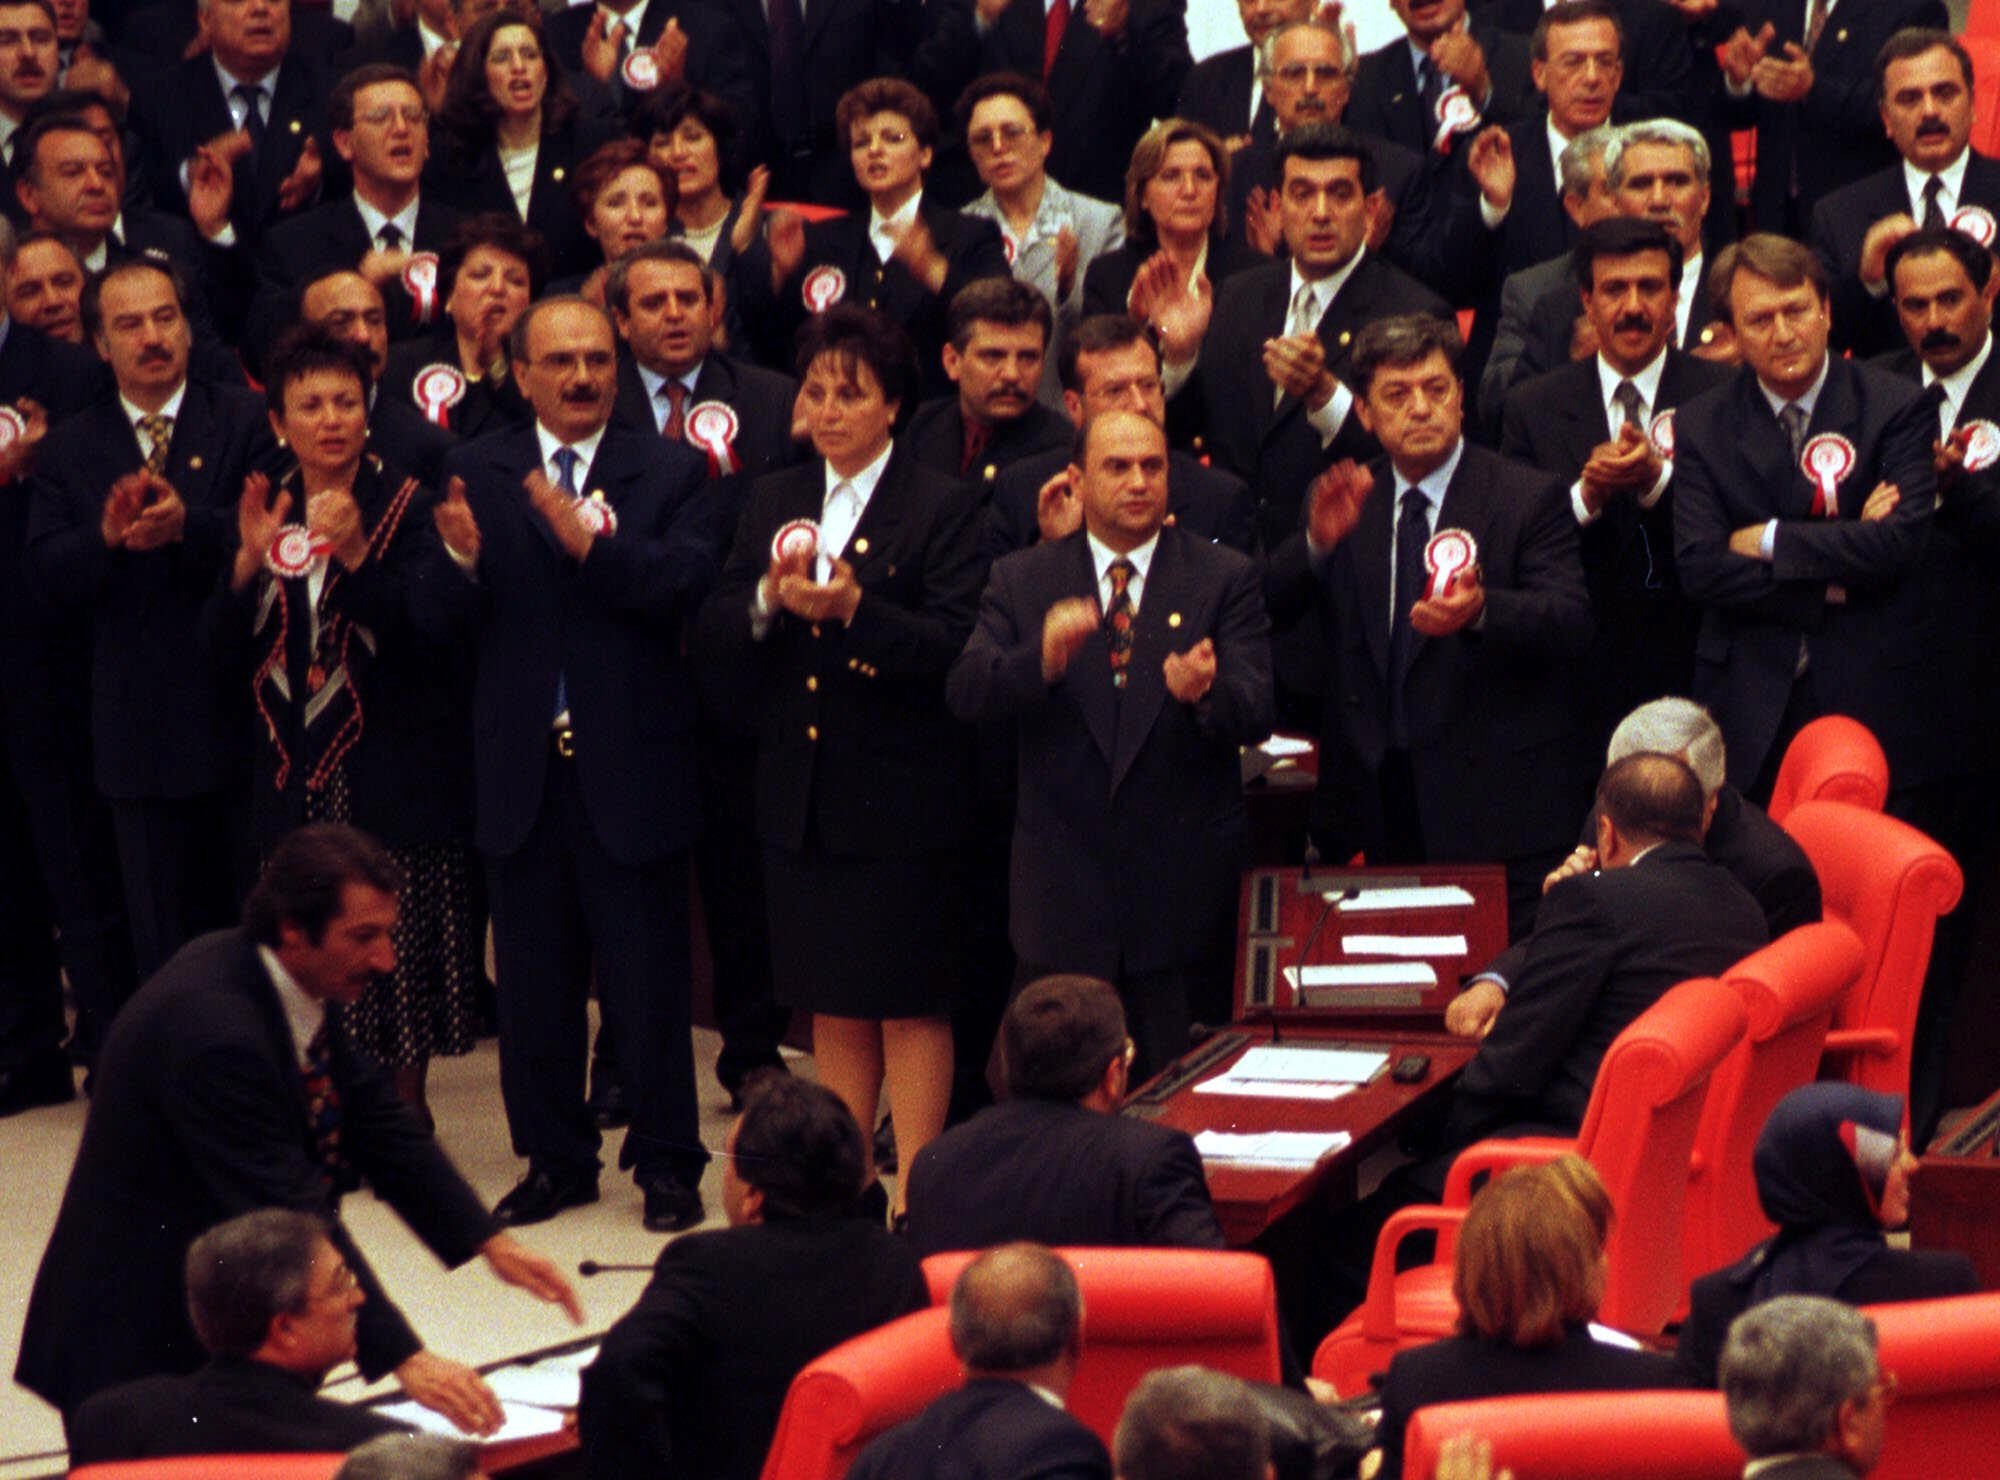 Wearing a headscarf Merve Kavakçı, a female new deputy of pro-Islamic Virtue Party at that time, bottom right, looks around as social democrat deputies protest her in the Parliament hall in Ankara, May 2, 1999. (AP Photo)